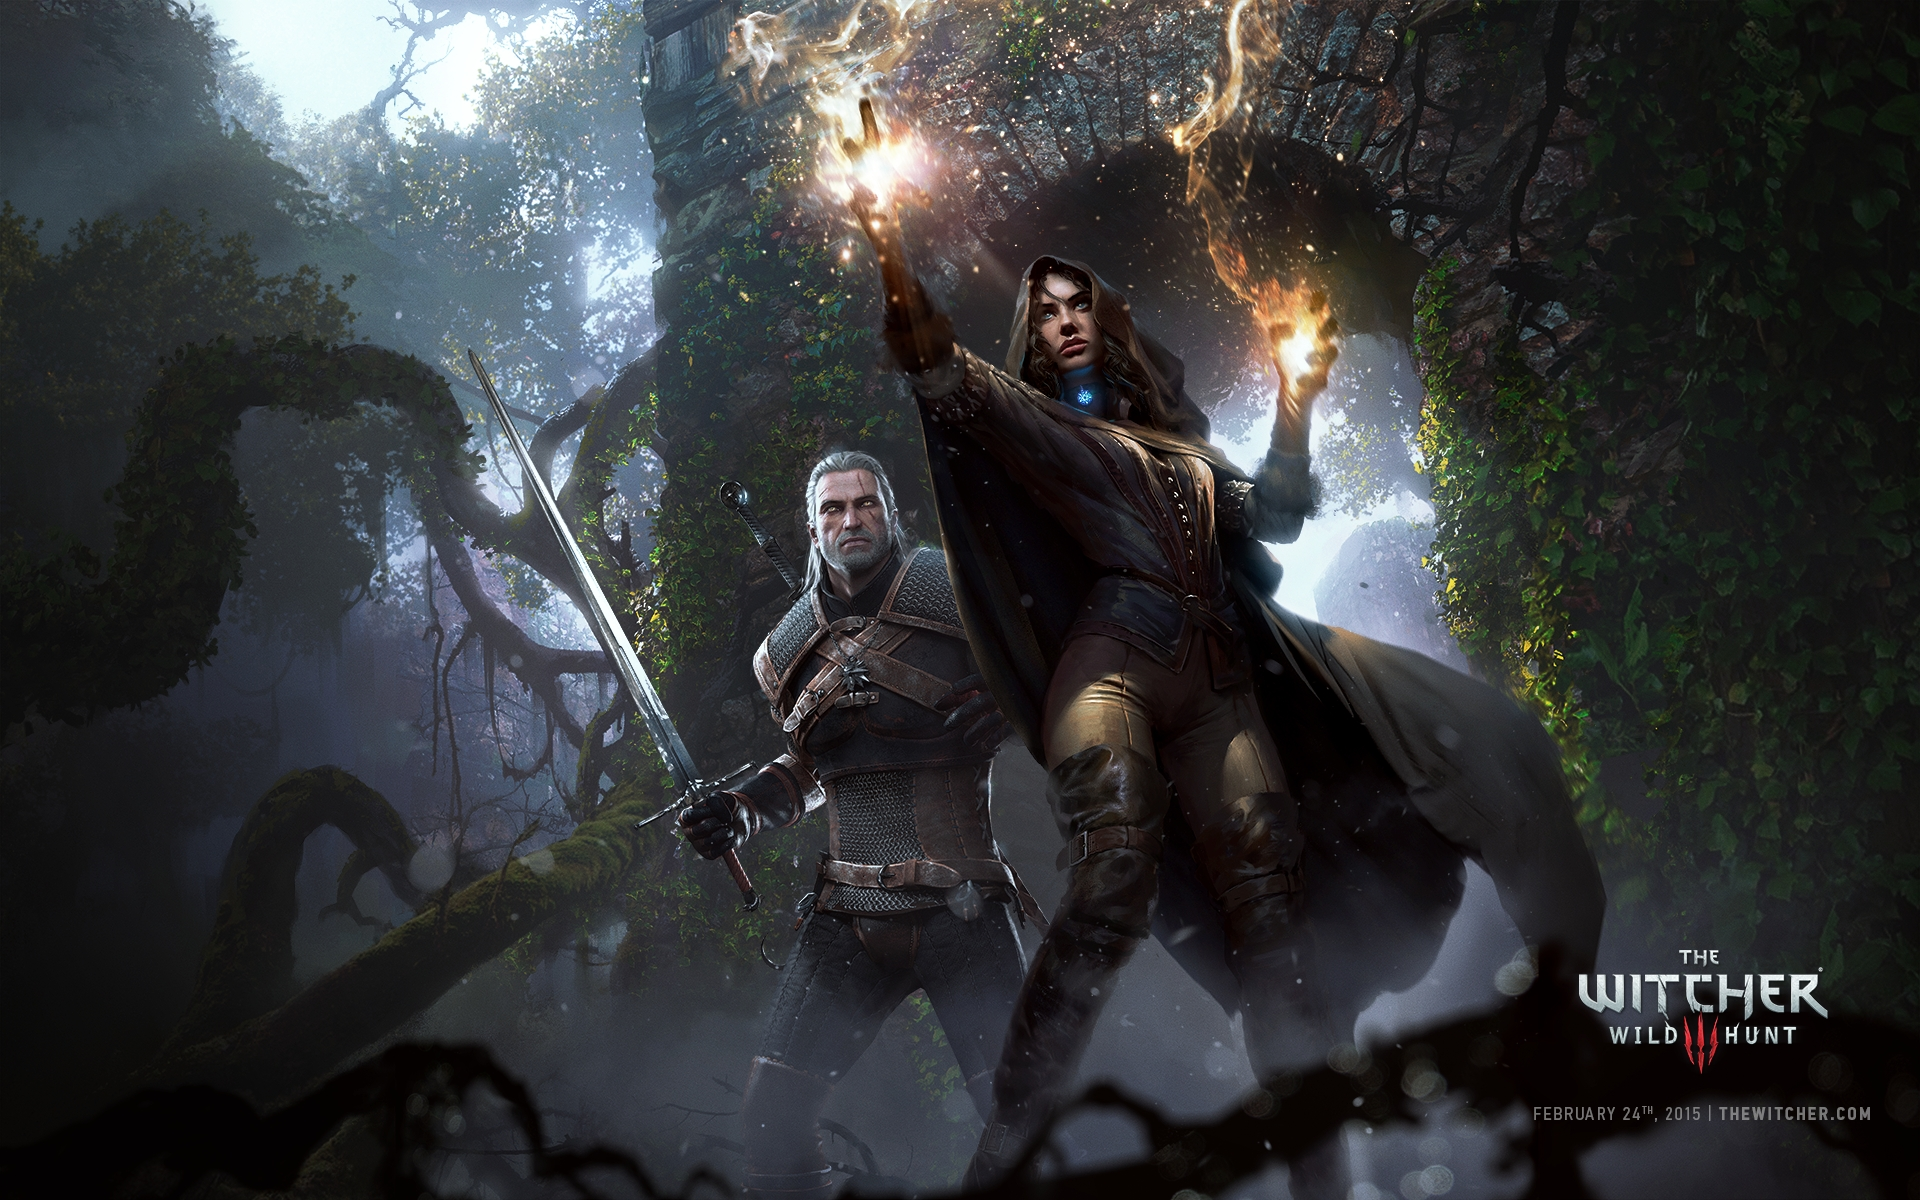 the witcher 3 wild hunt game wallpapers all hd wallpapers